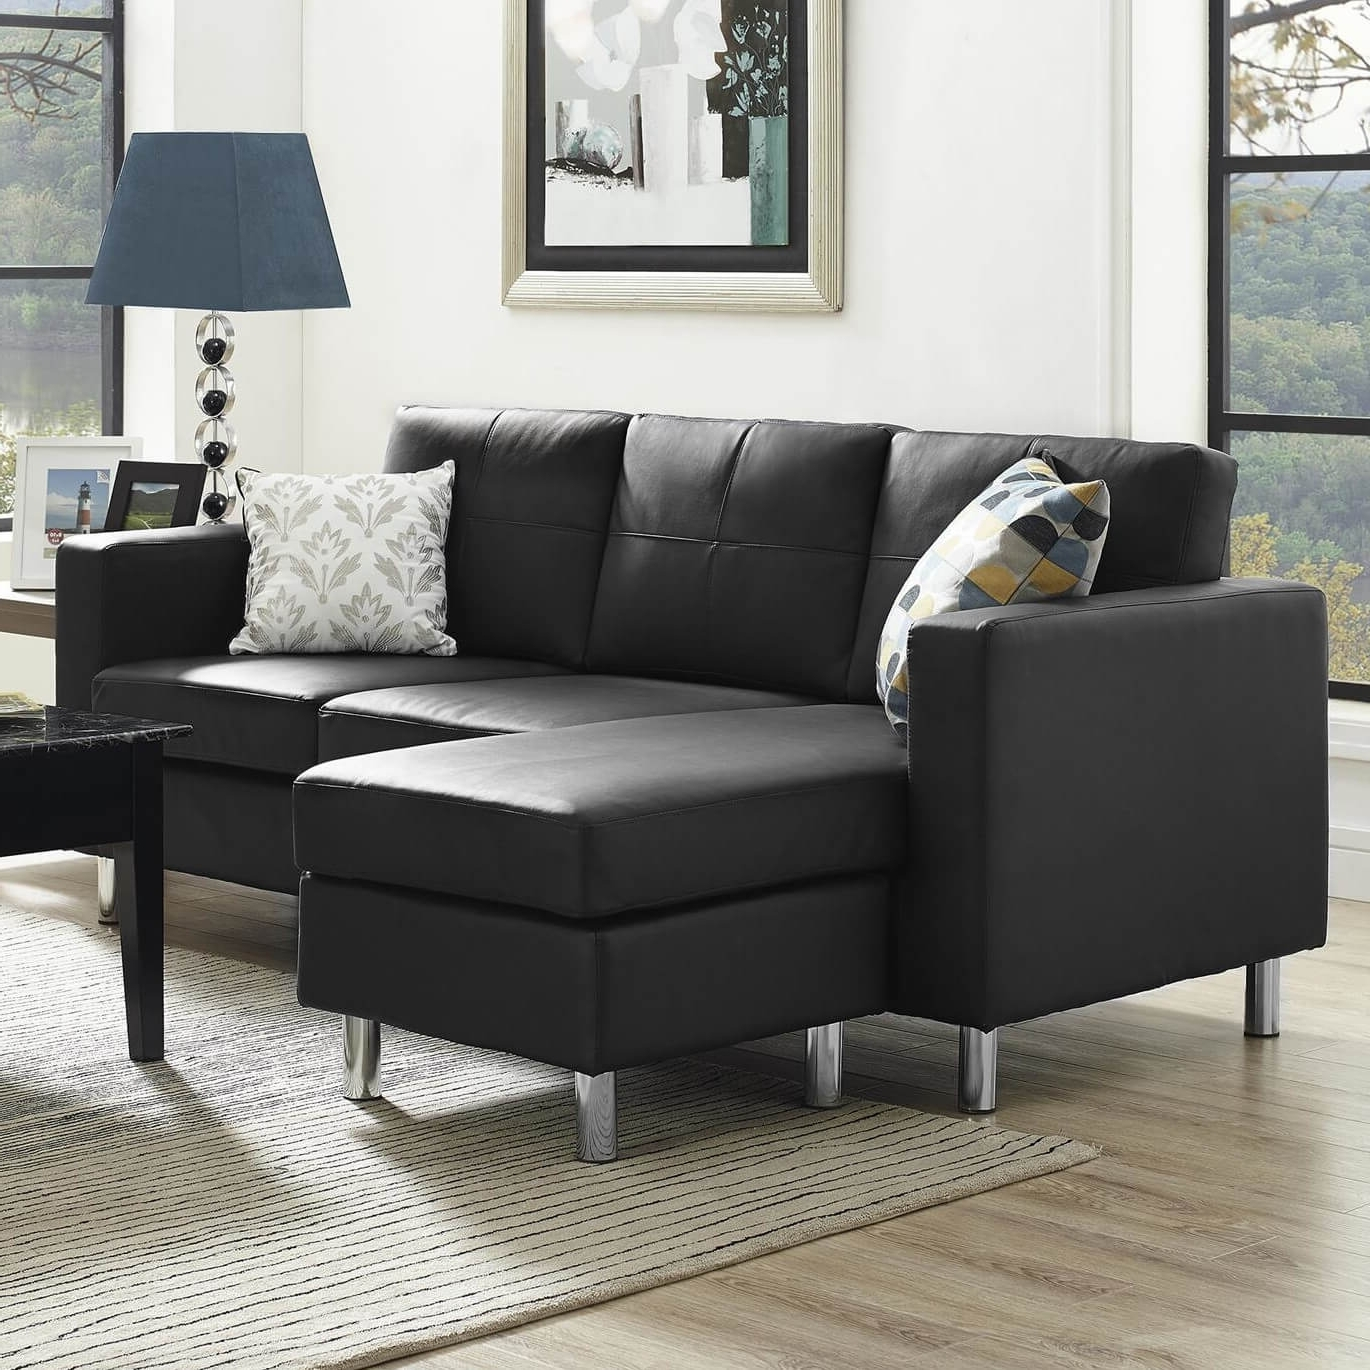 Most Popular Sectional Sofas Under 700 Intended For 40 Cheap Sectional Sofas Under $500 For (View 7 of 20)